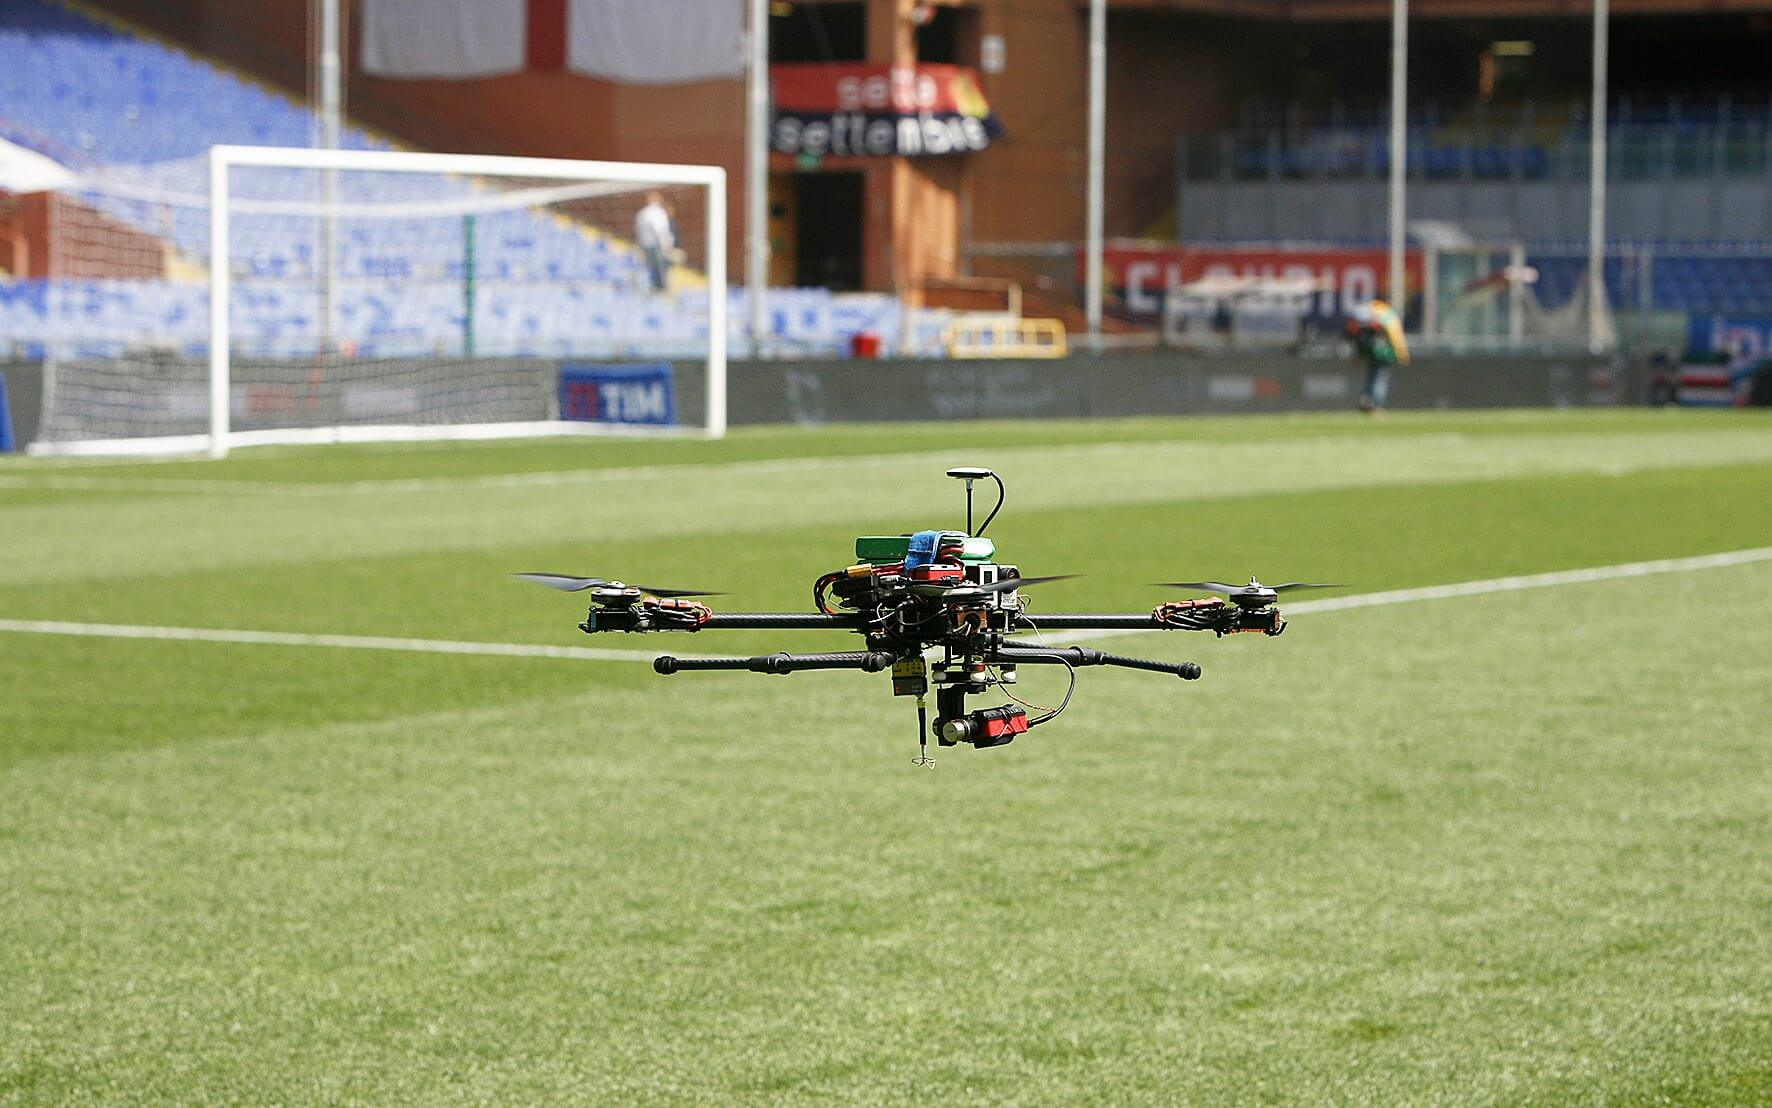 drone hovering on soccer field